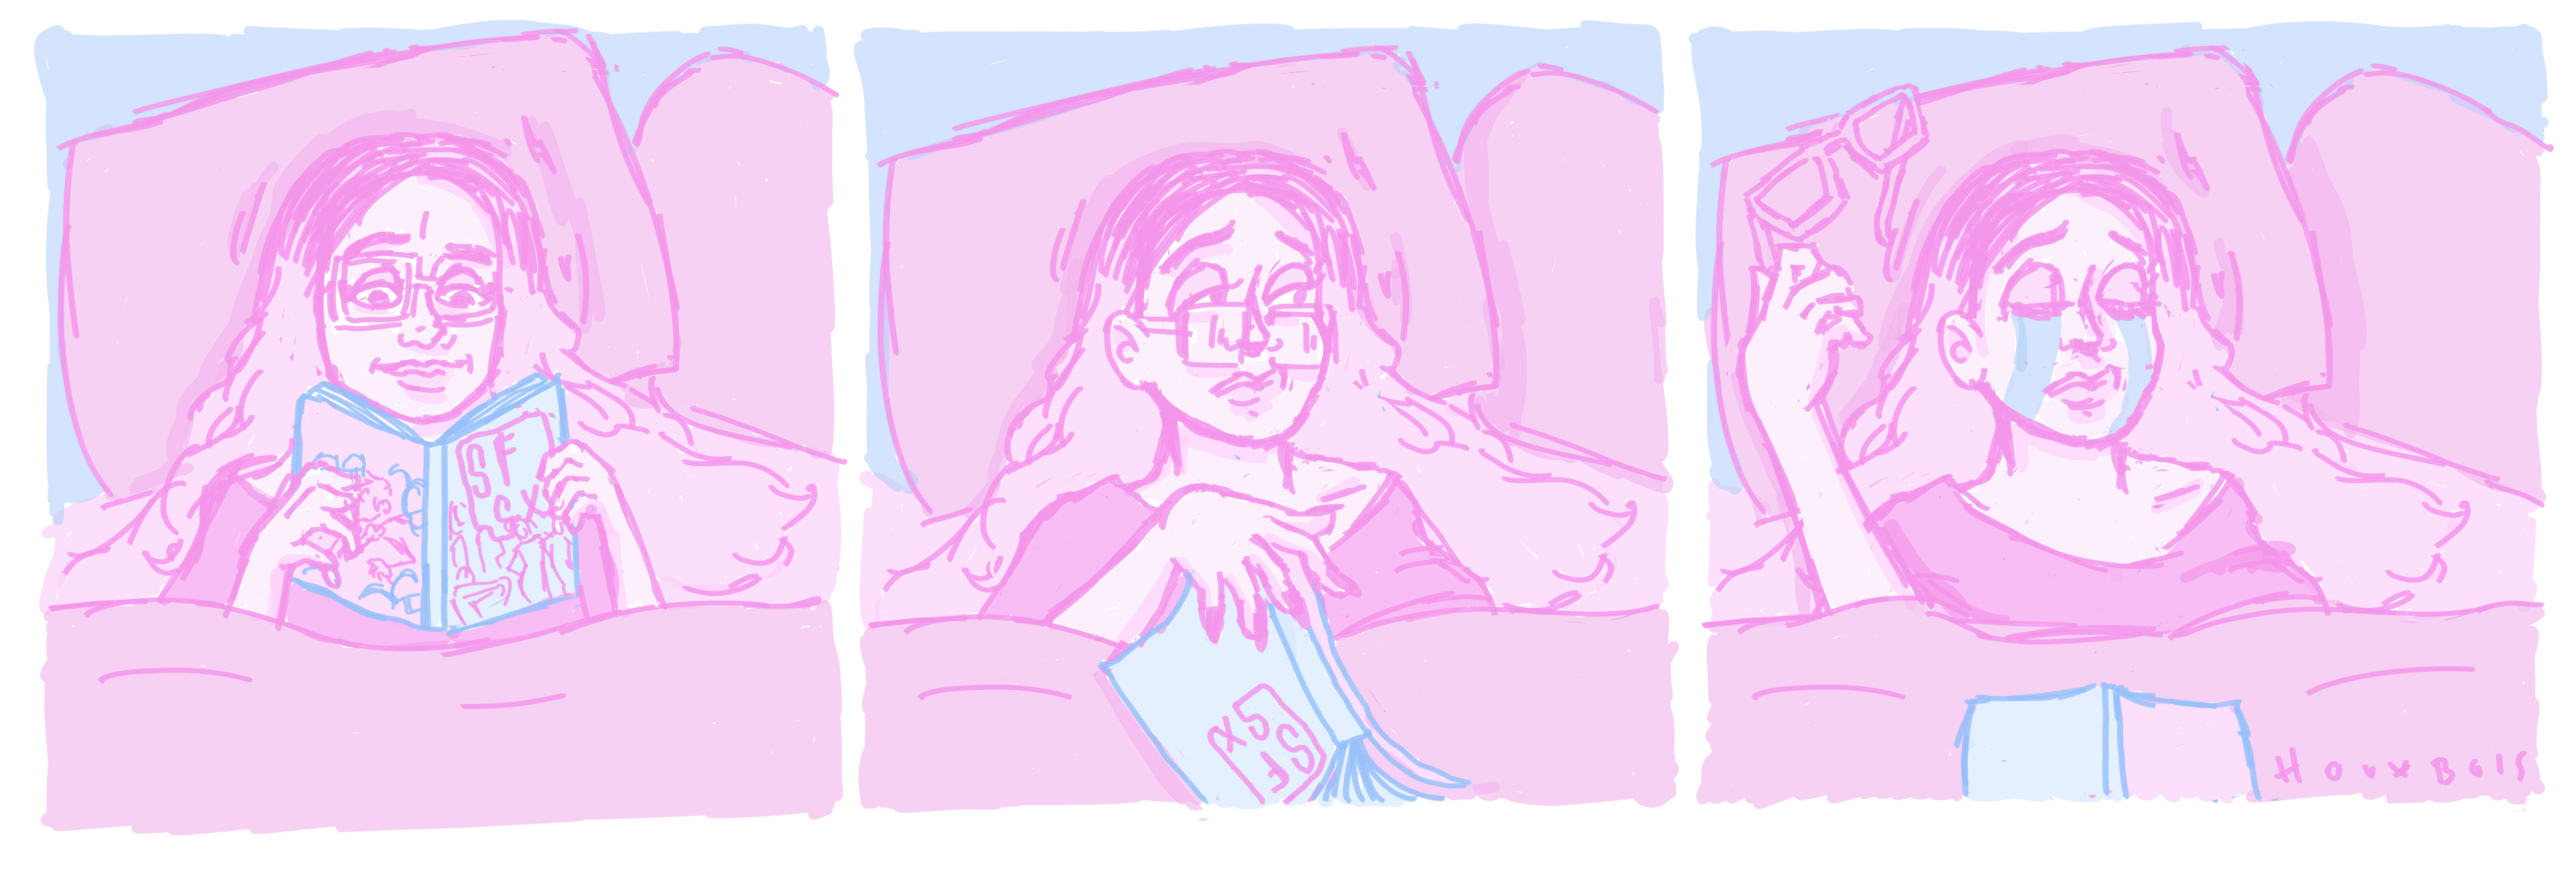 Veronique Emma Houxbois is changing the representation of trans sexuality in comics